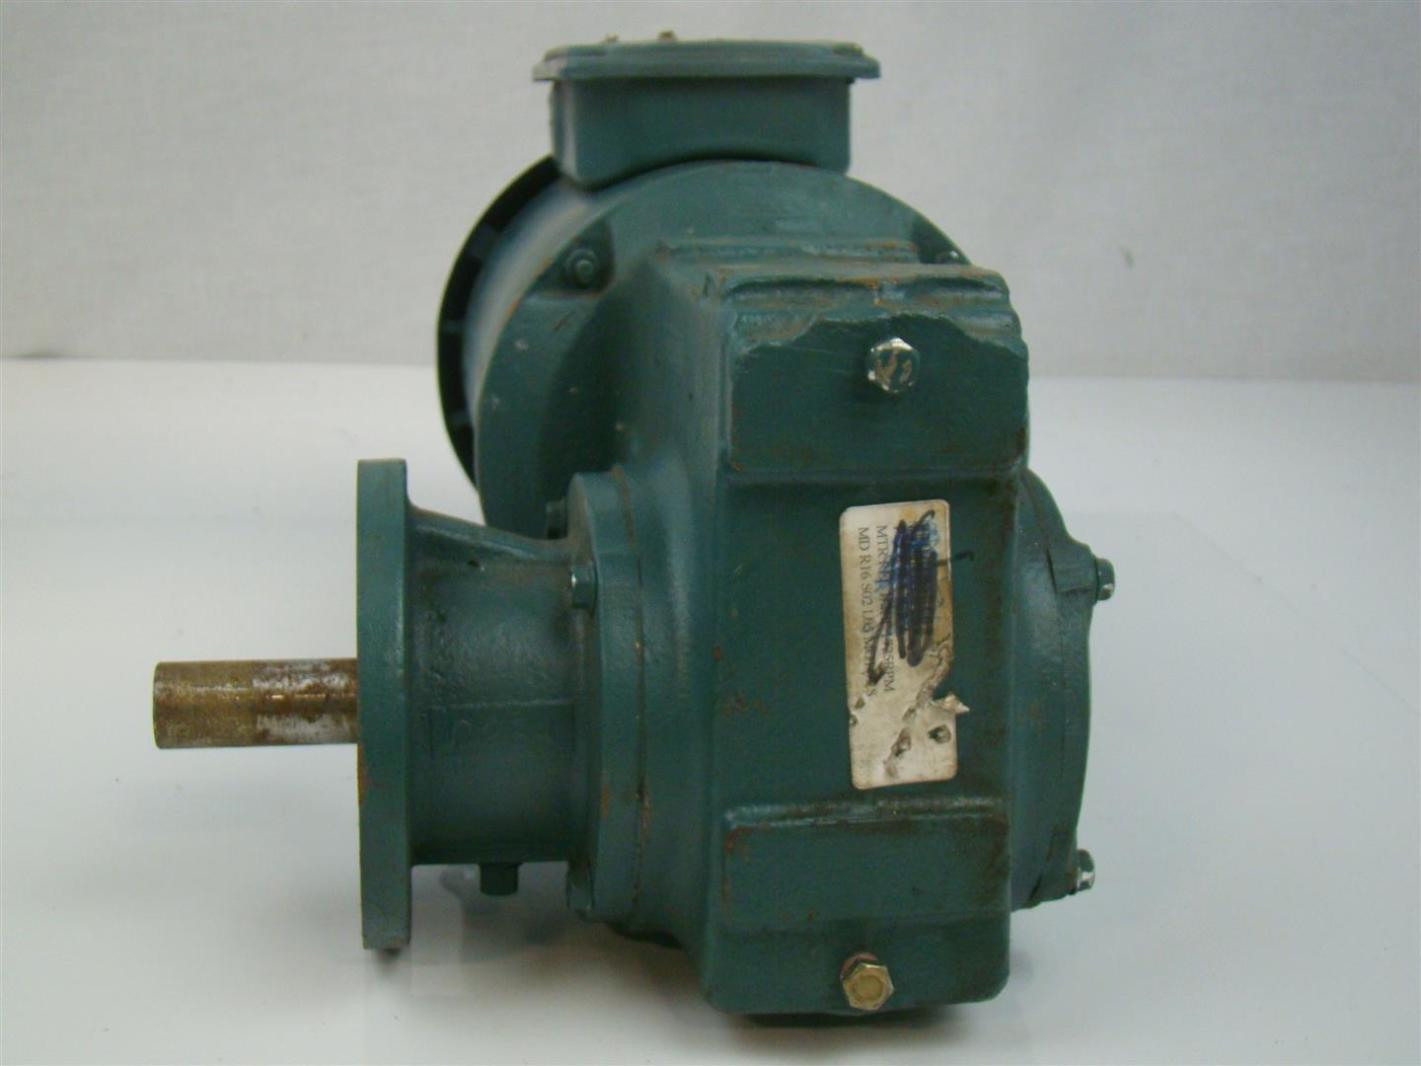 Reliance electric duty master ac motor 1 2 hp 1725rpm 230 for Reliance electric motor parts